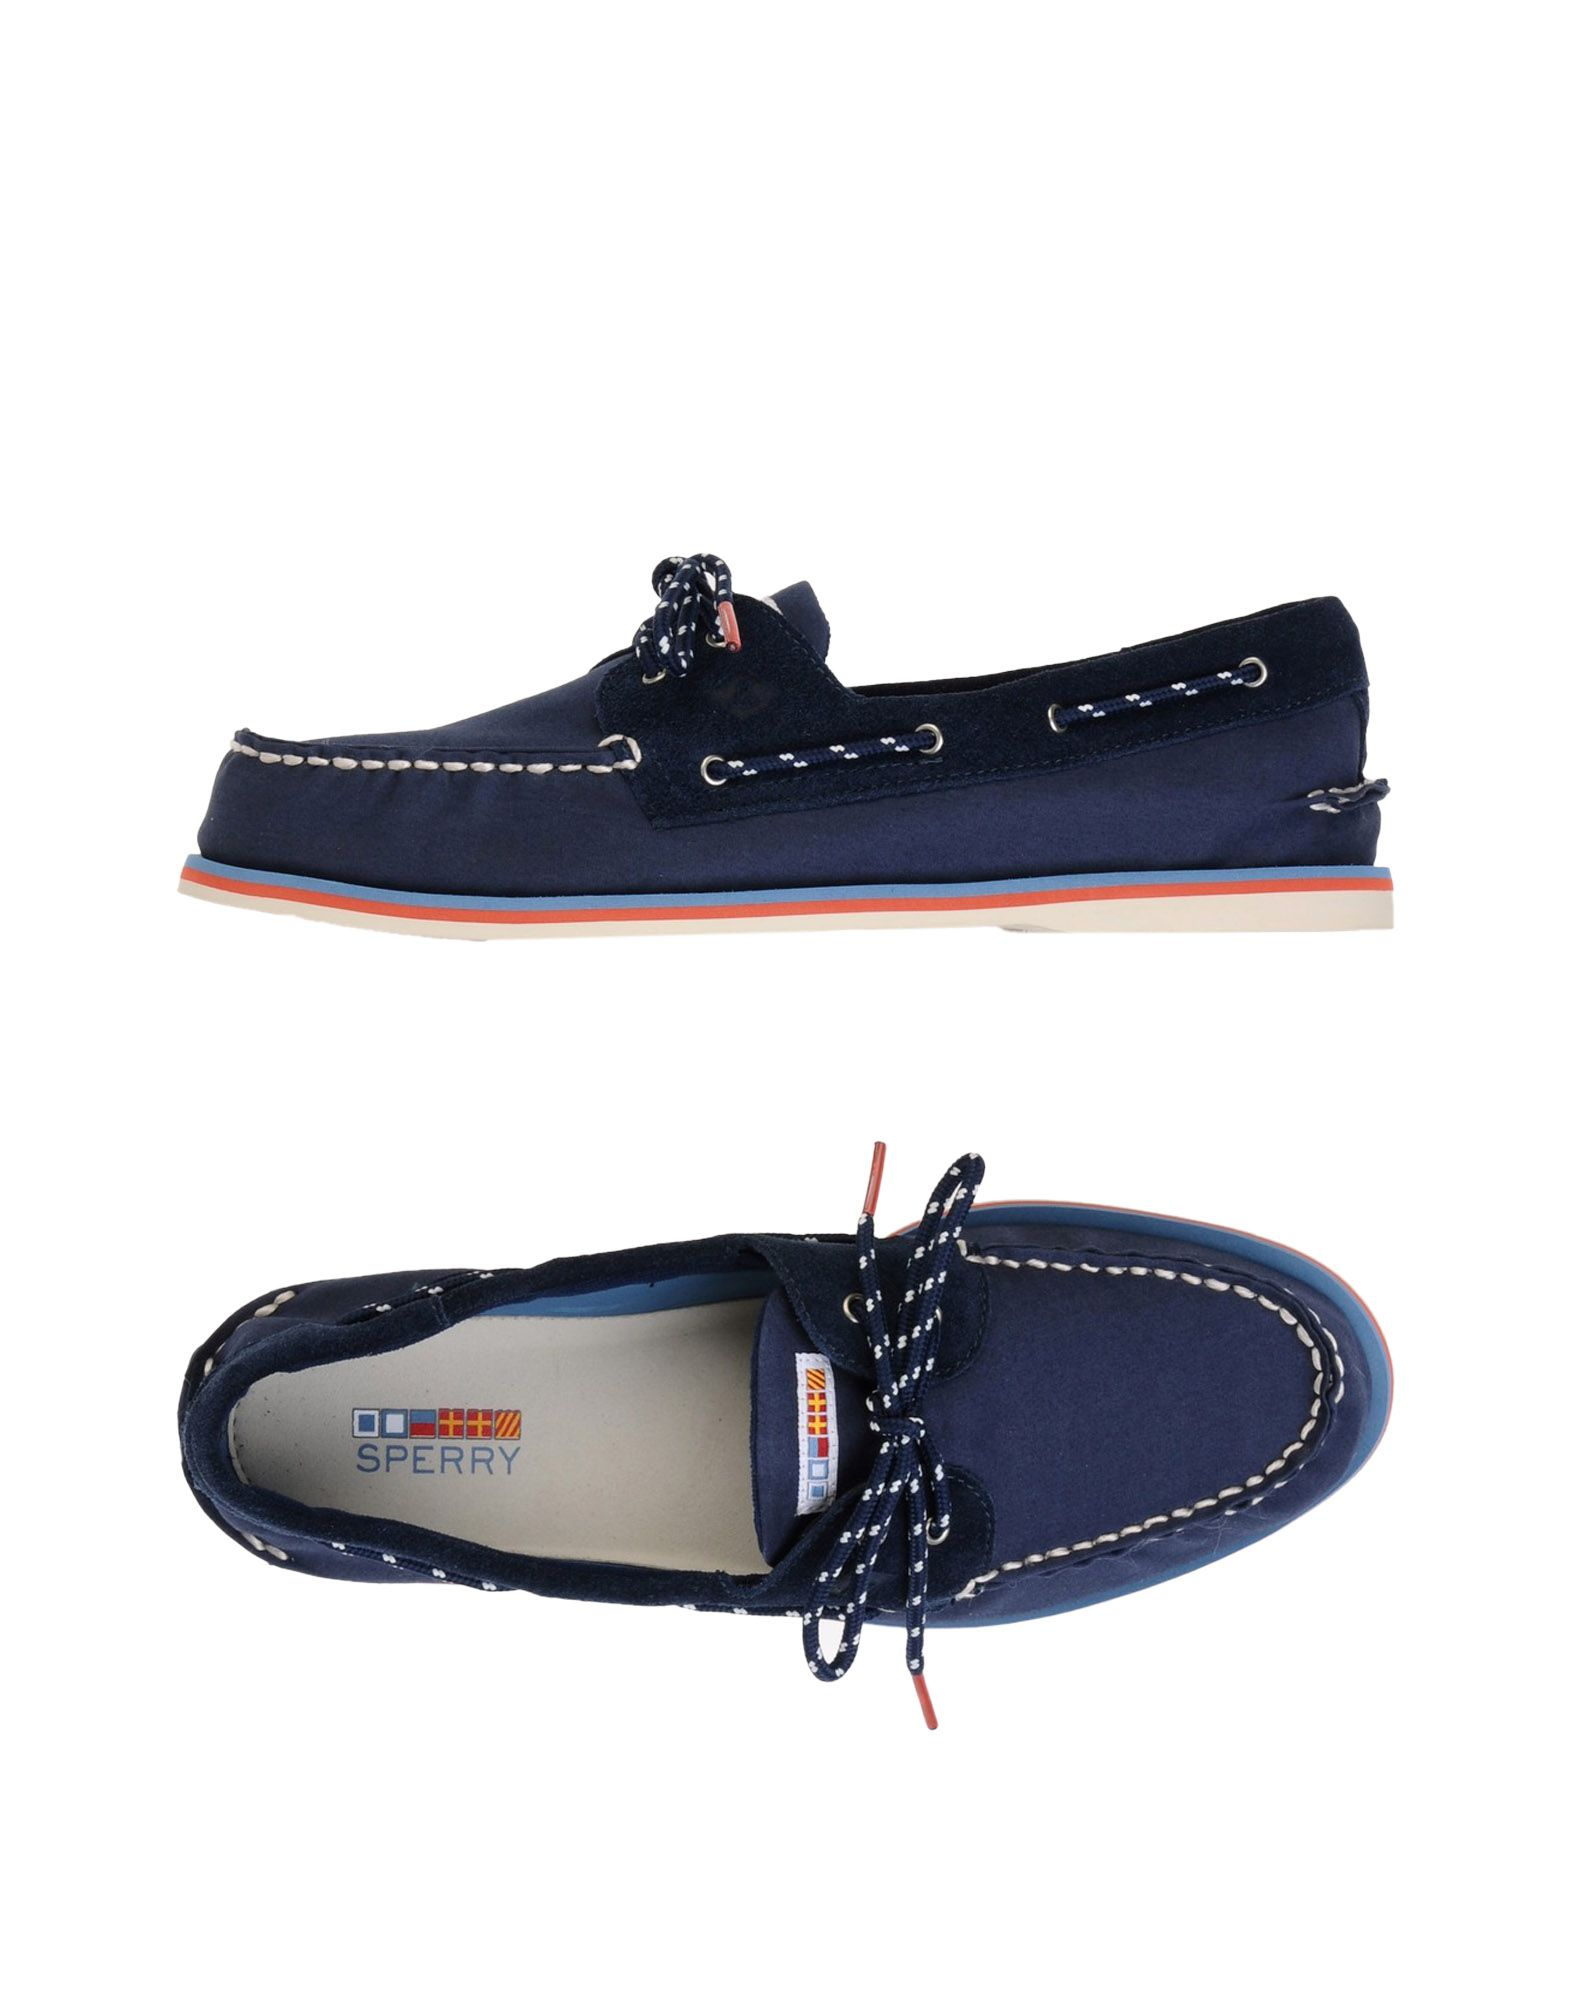 Mocasín Sperry Top-Sider A/O A/O Top-Sider 2-Eye Nautical - Hombre - Mocasines Sperry Top-Sider c8bd40